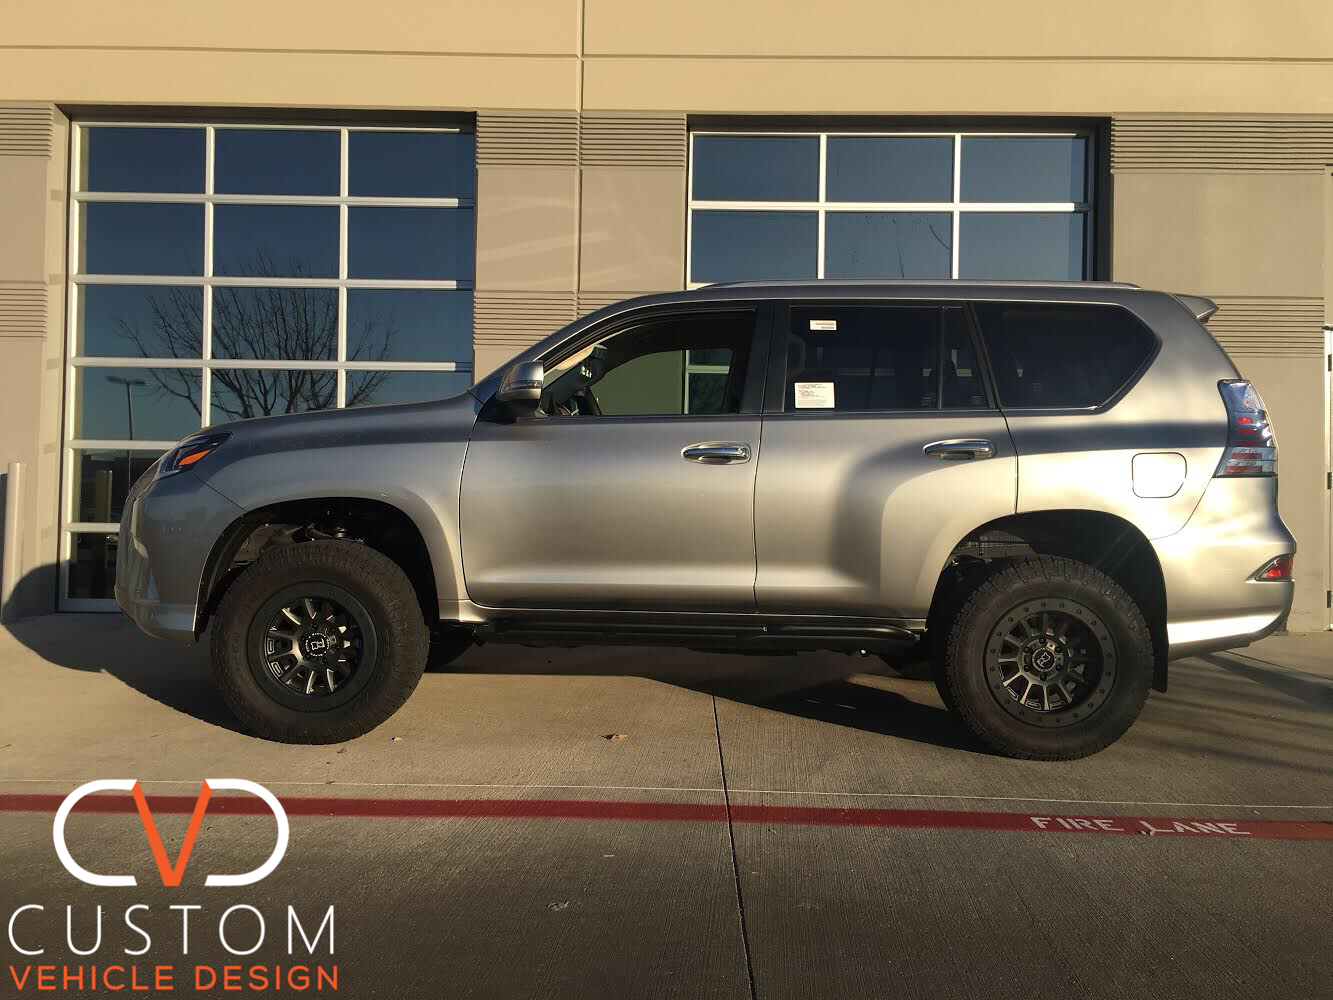 2020 Overland Edition Lexus Gx460 With Black Rhino Dugger Wheels And Nitto Tires Customize Your Vehicle With Cvd Today In 2020 Lexus Gx 460 Black Rhino Wheels Lexus